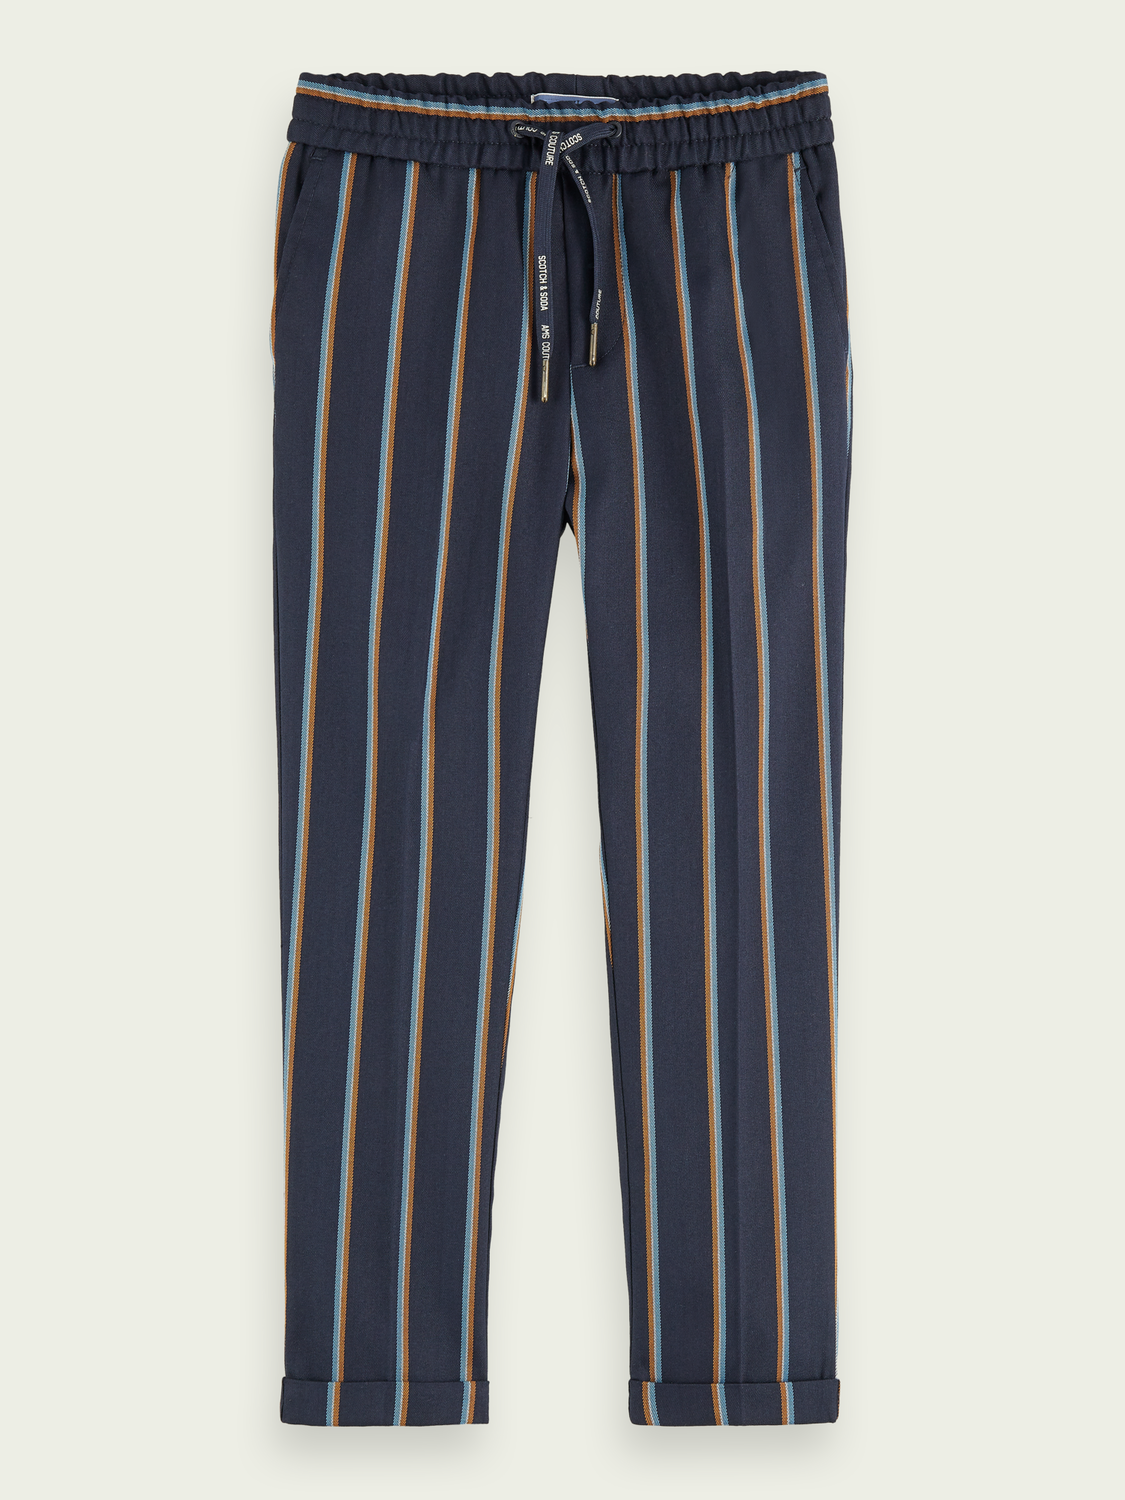 Kids Striped relaxed pants | Slim fit